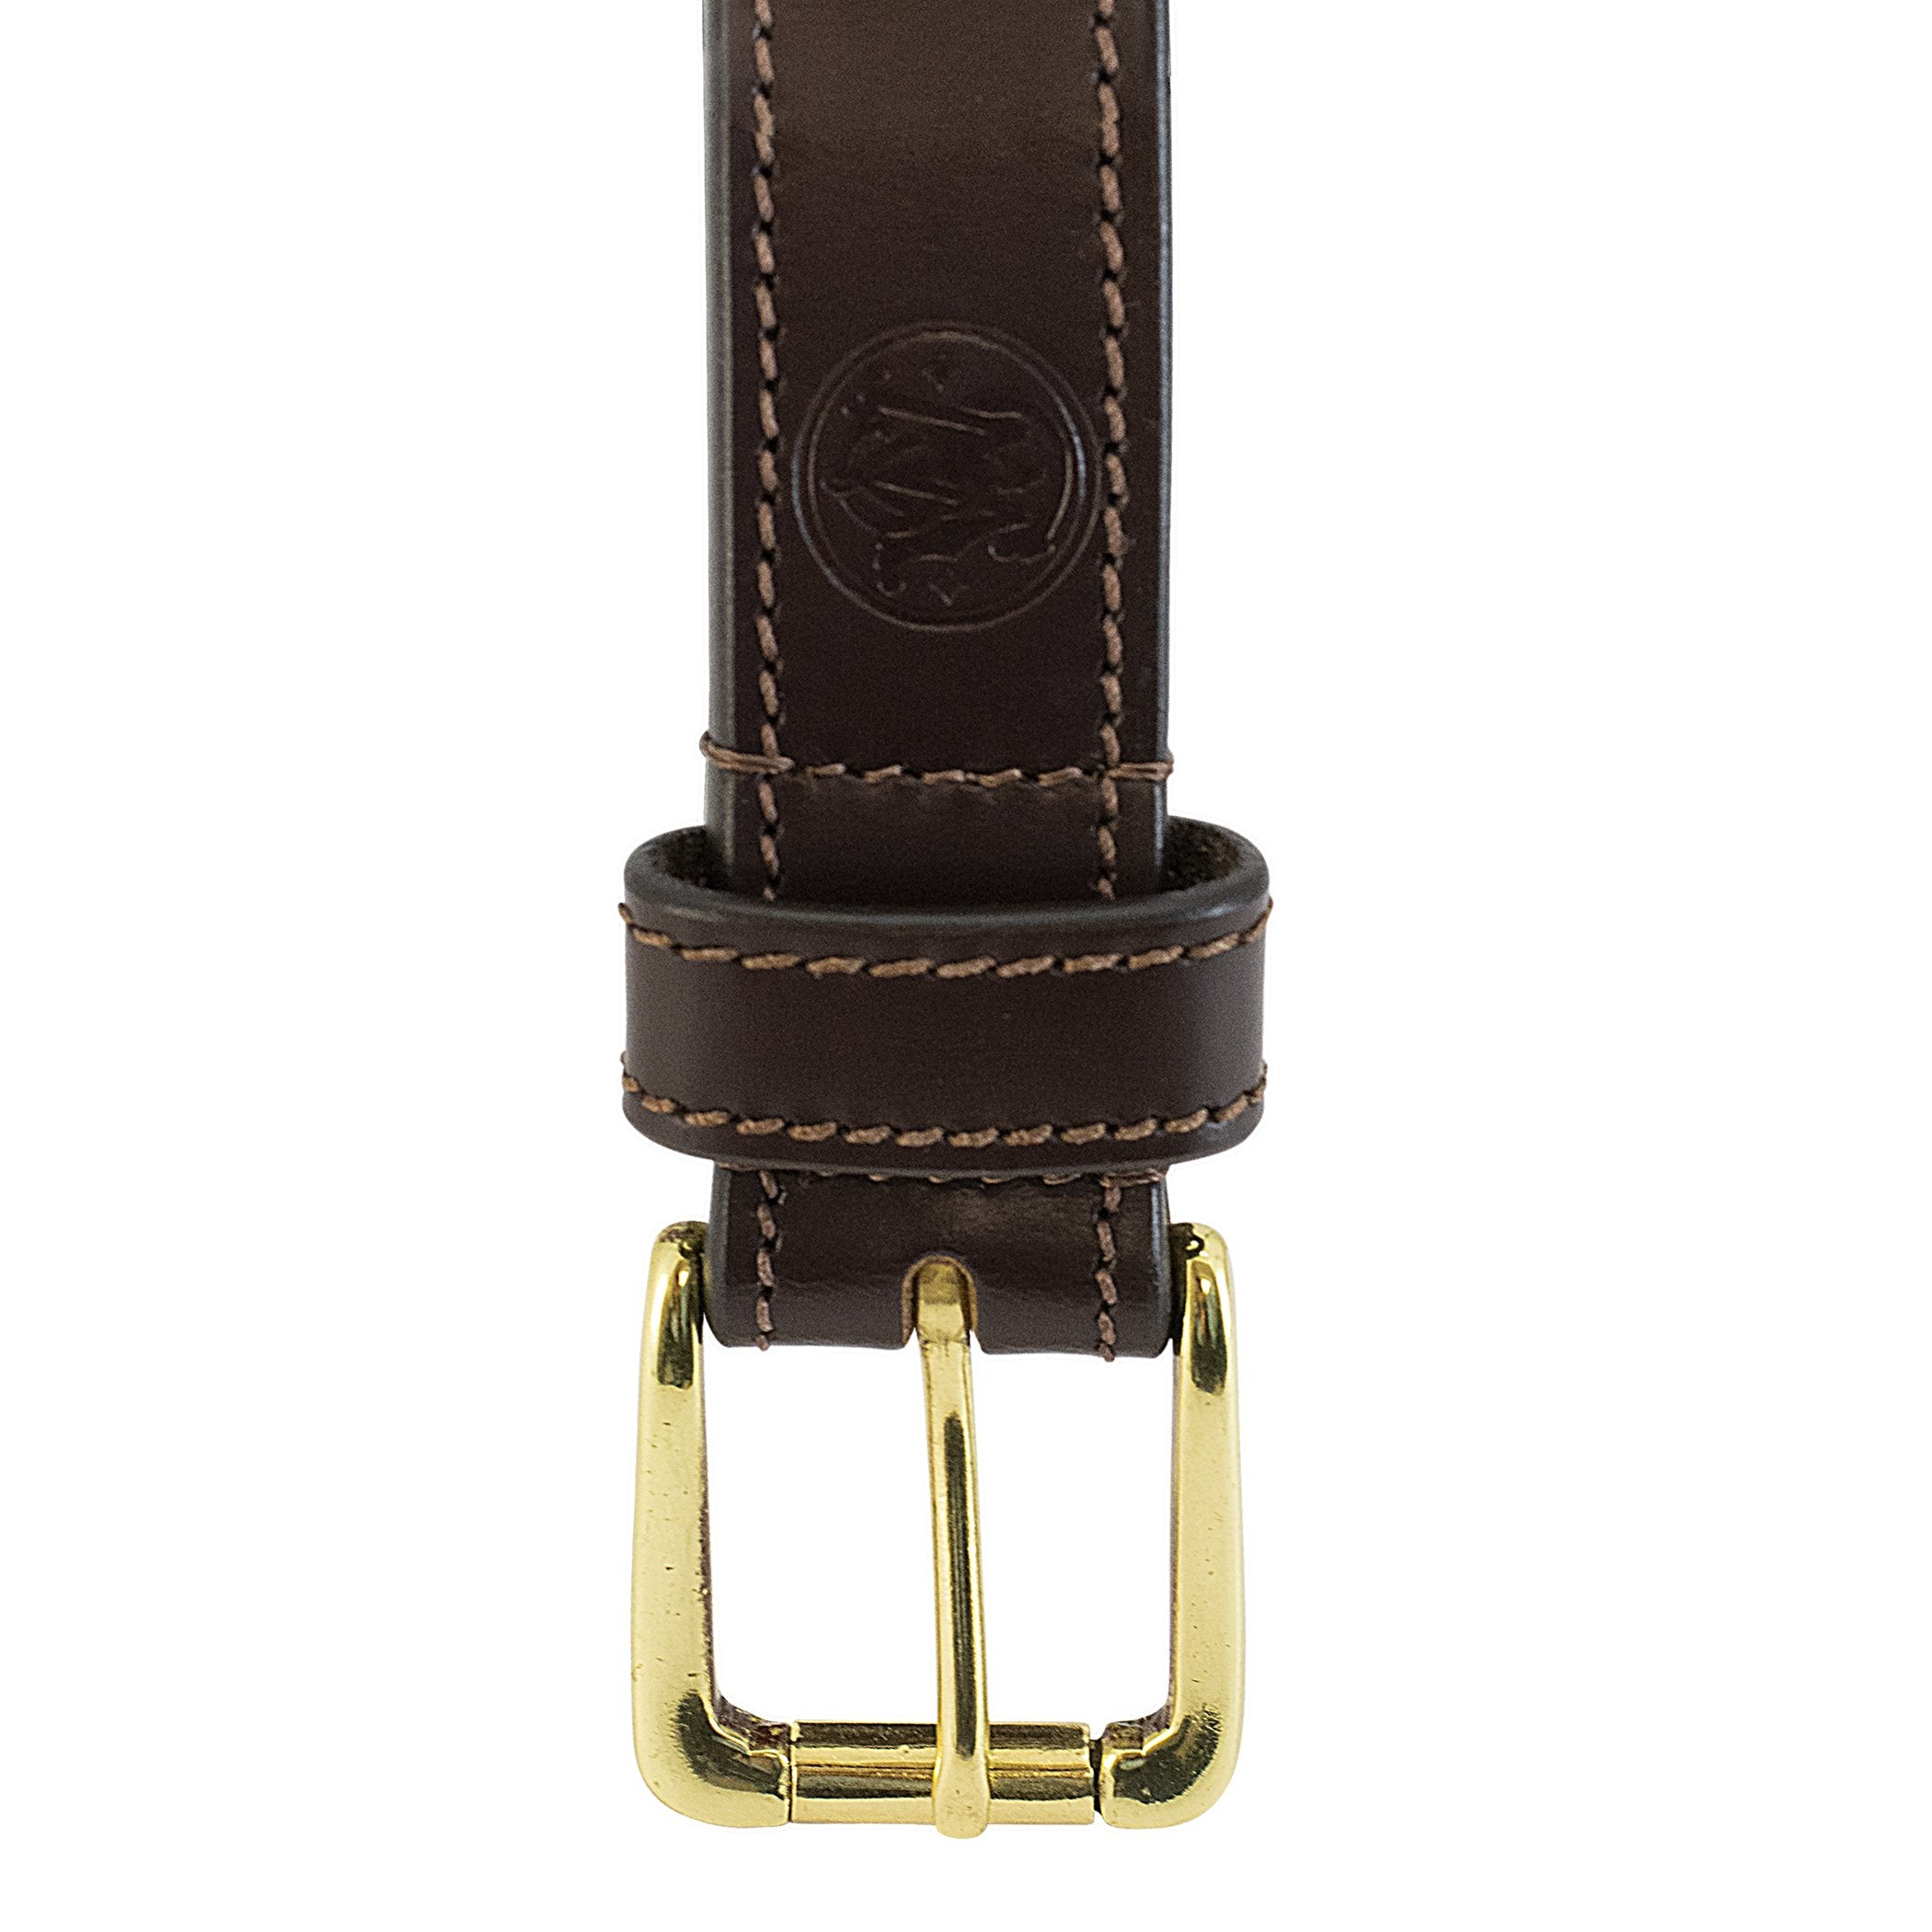 Smith & Wesson EDC Belts